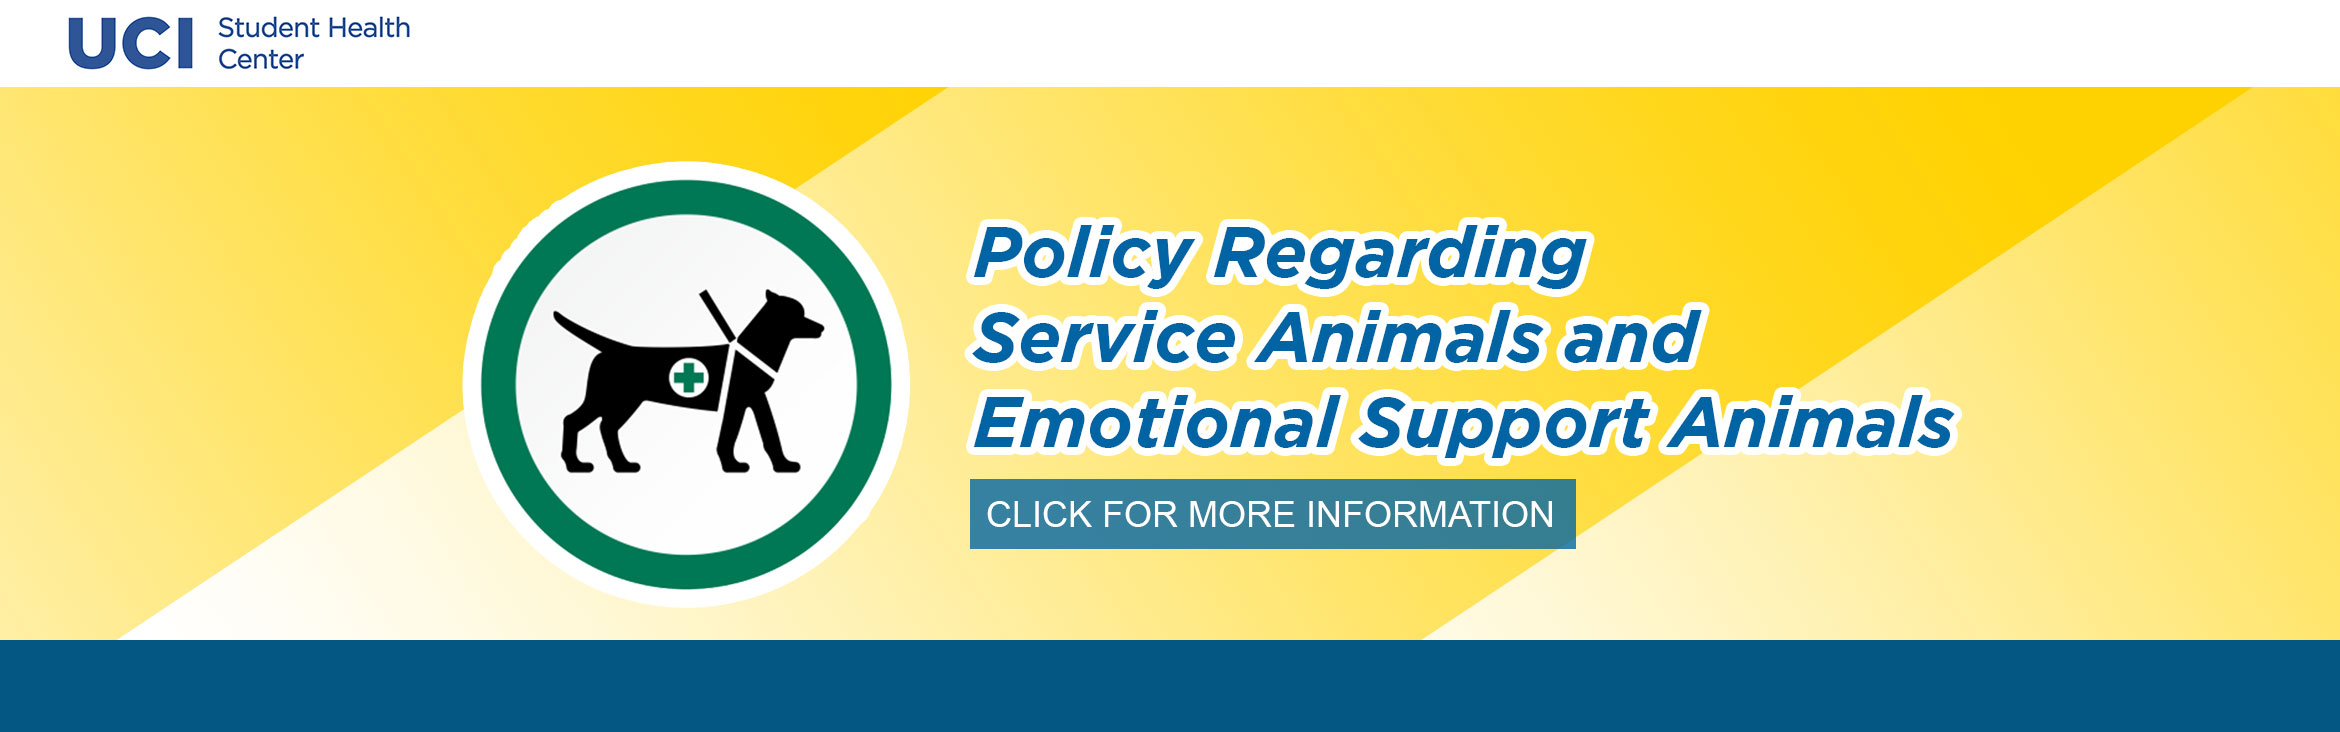 Policy Regarding Service Animals and Emotional Support Animals